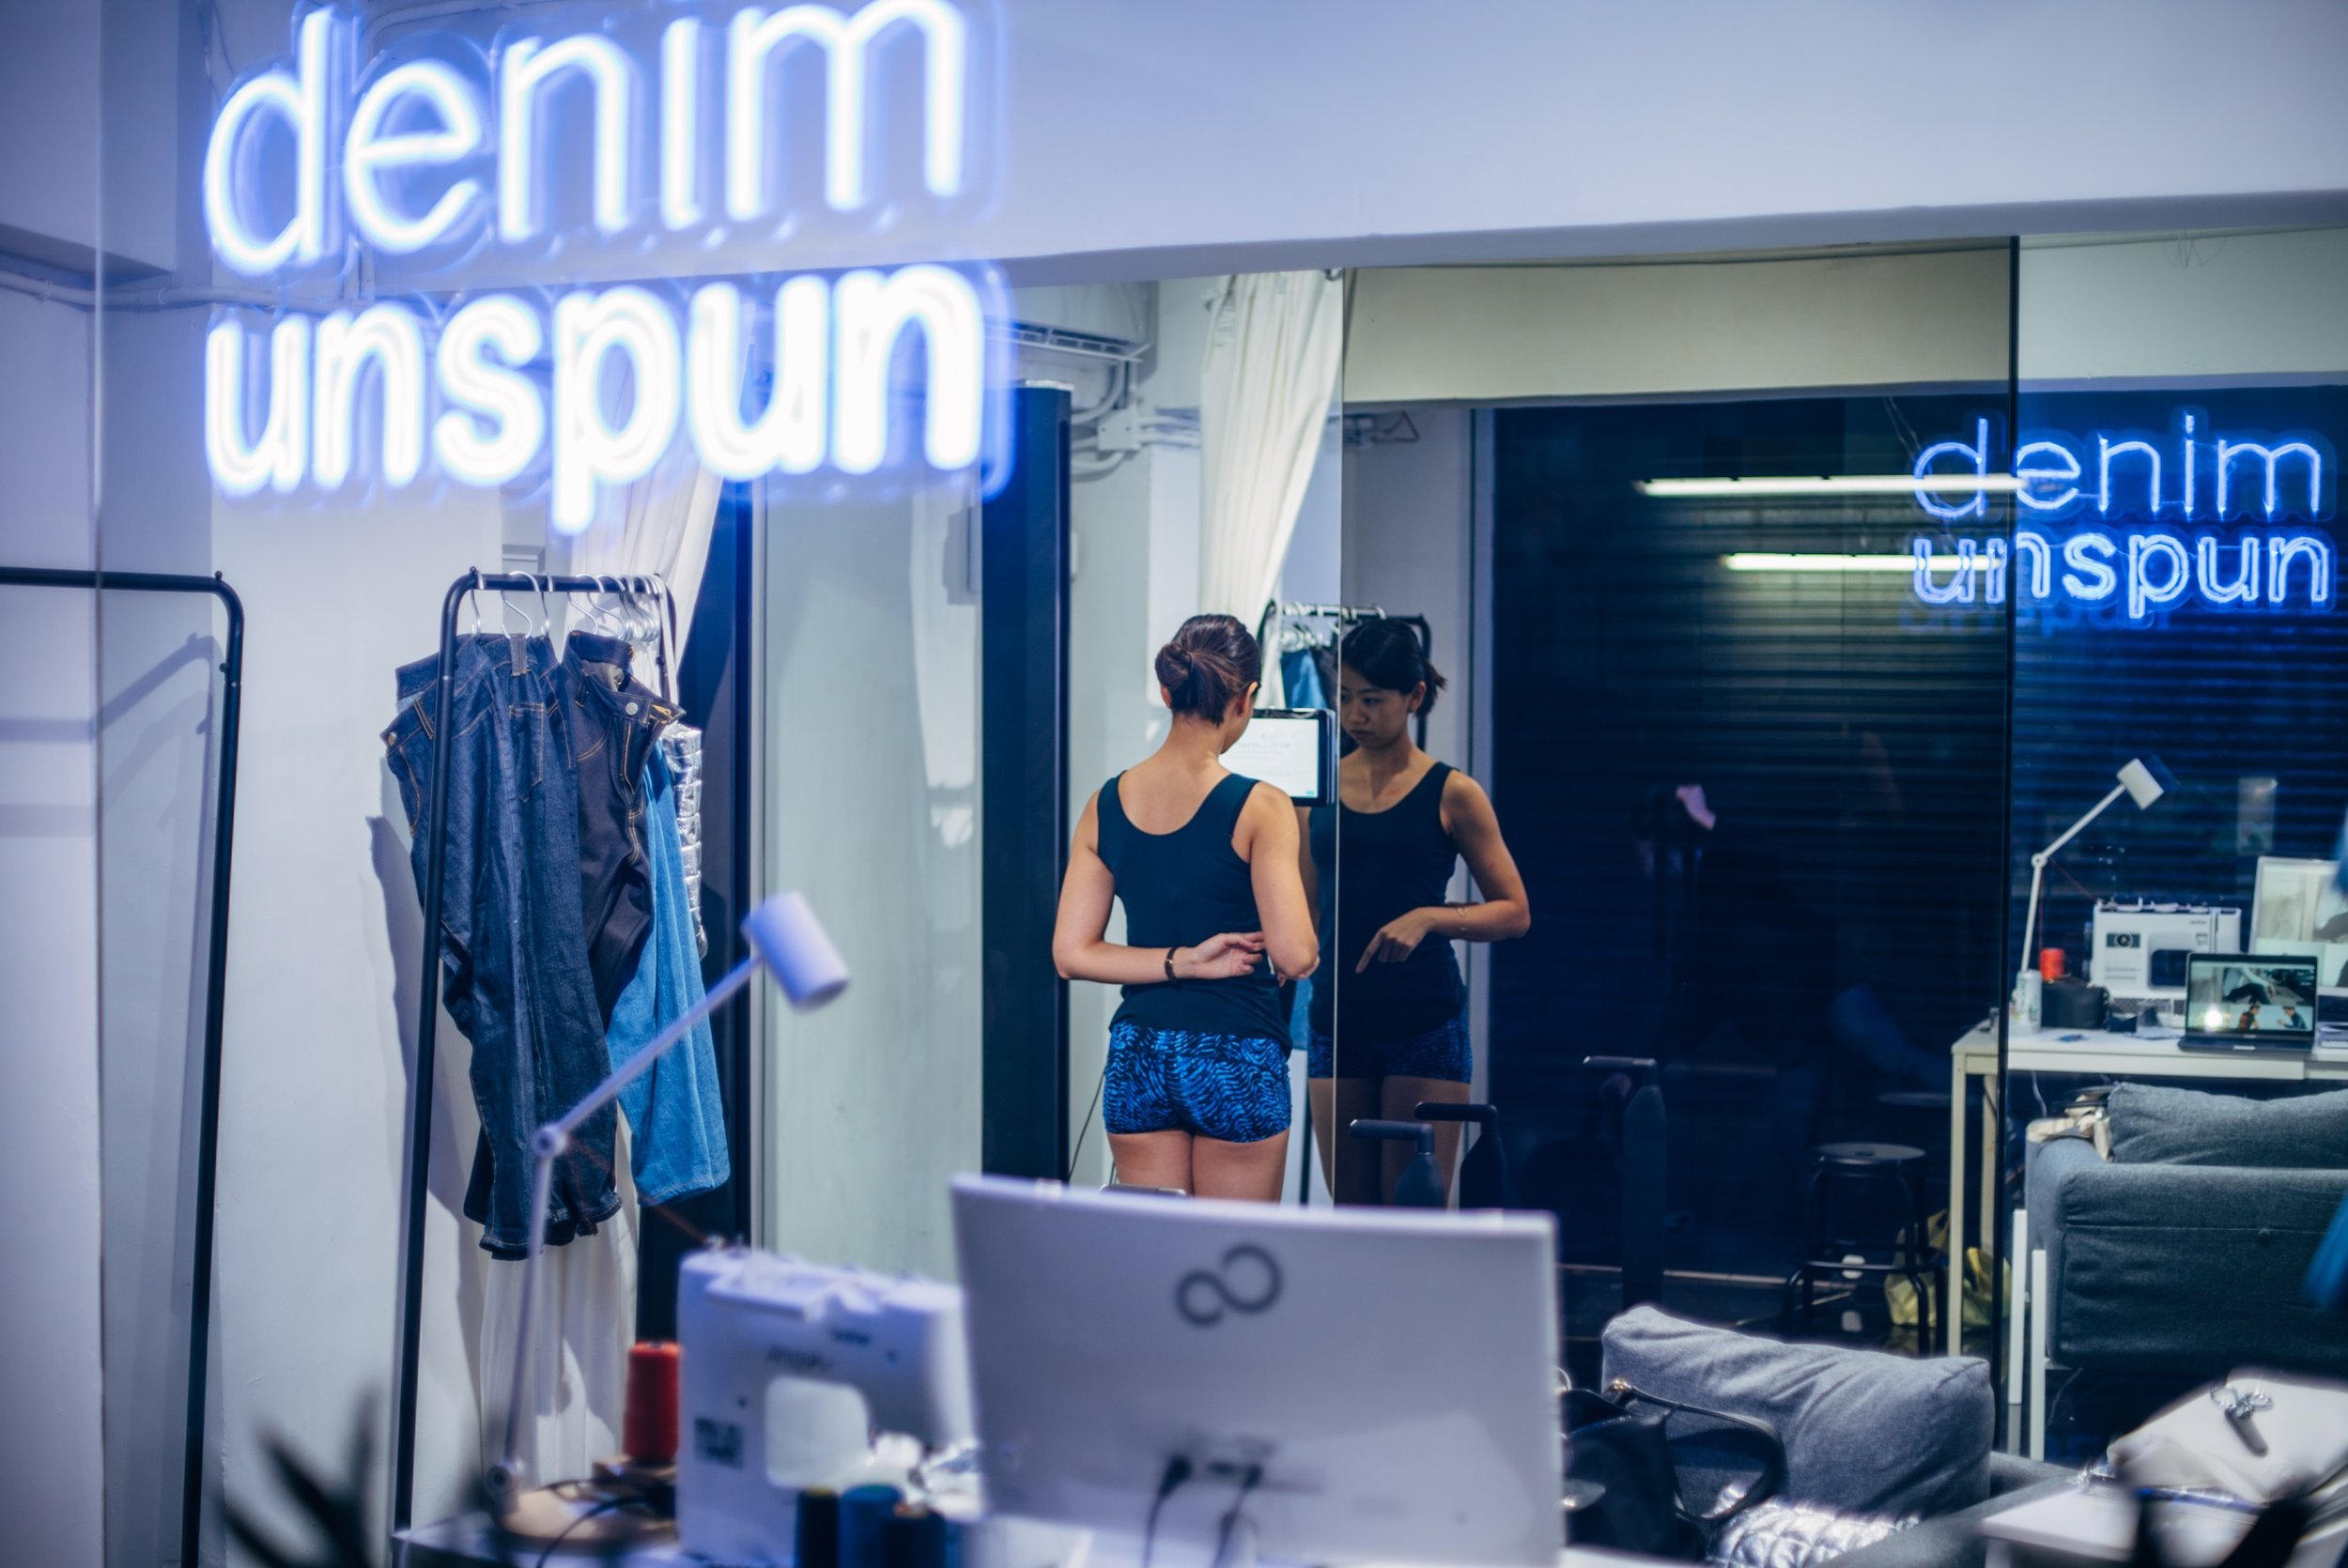 - when you come to an unspun pop-up, you are in for a new experience! unspun has flipped the current clothing model, instead starting the whole process with you. when you arrive at an unspun pop-up, you will be greeted with a drink, a chair, and some time to chat. we will tell you about how we are able to make your jeans specifically for you. then, we will take you through the 3d imaging process, which is painless and actually quite fun. this technology is what enables us to custom make jeans as if we were stitching around your actual body. the imaging system is comprised of infrared sensors and a rotating disk, which you will stand on. the whole thing takes less than a minute and gives you a ton of information (including 100,000 data points, turning you into a data cloud). this amount of information allows us to be both more efficient and more bespoke than a tailor.check out the scanner we use.